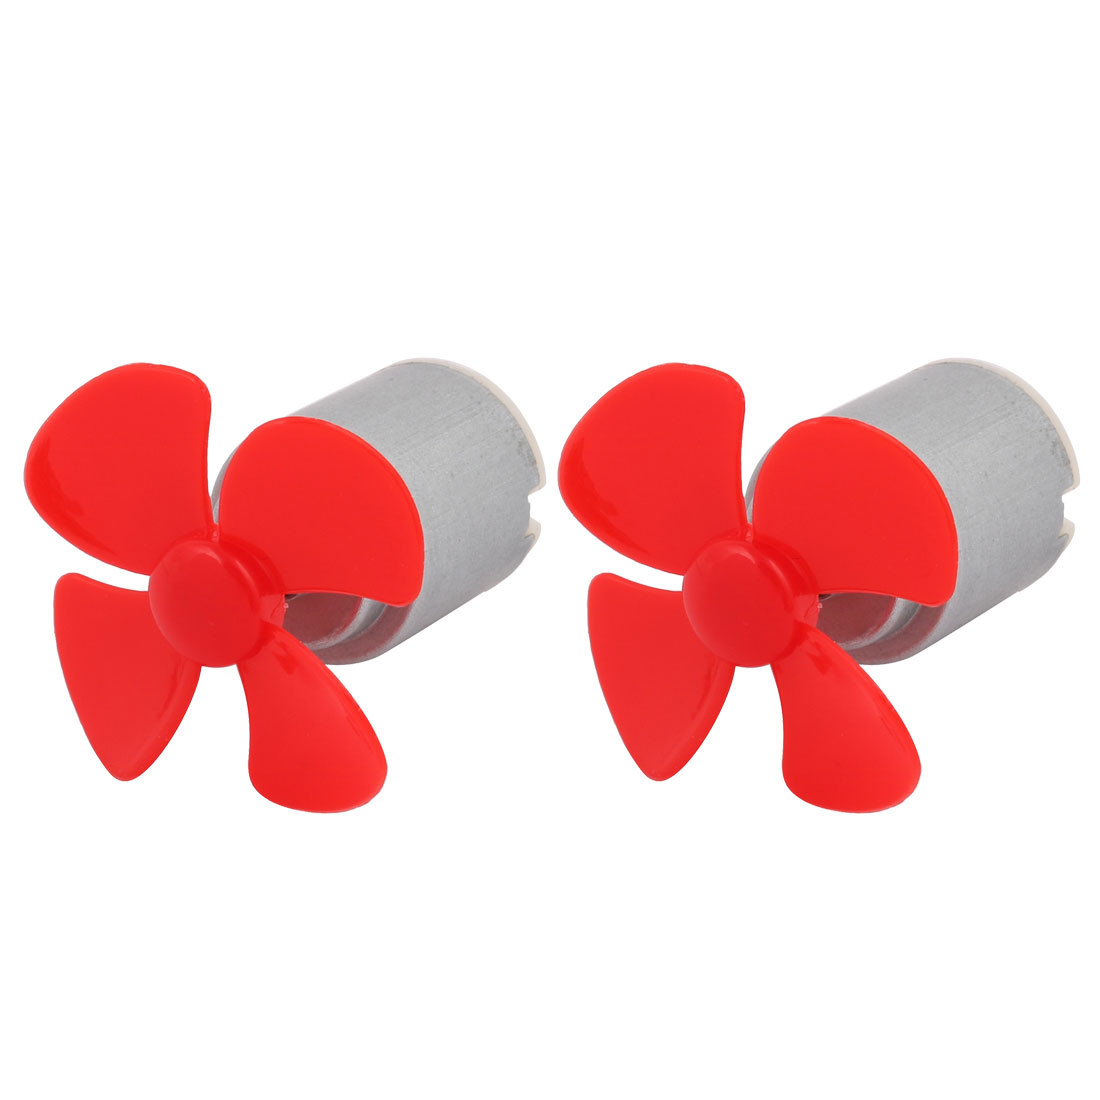 2Pcs DC 5V 8500RPM Large Torque Motor 4-Vane 40mm Dia Propeller Red for RC Model